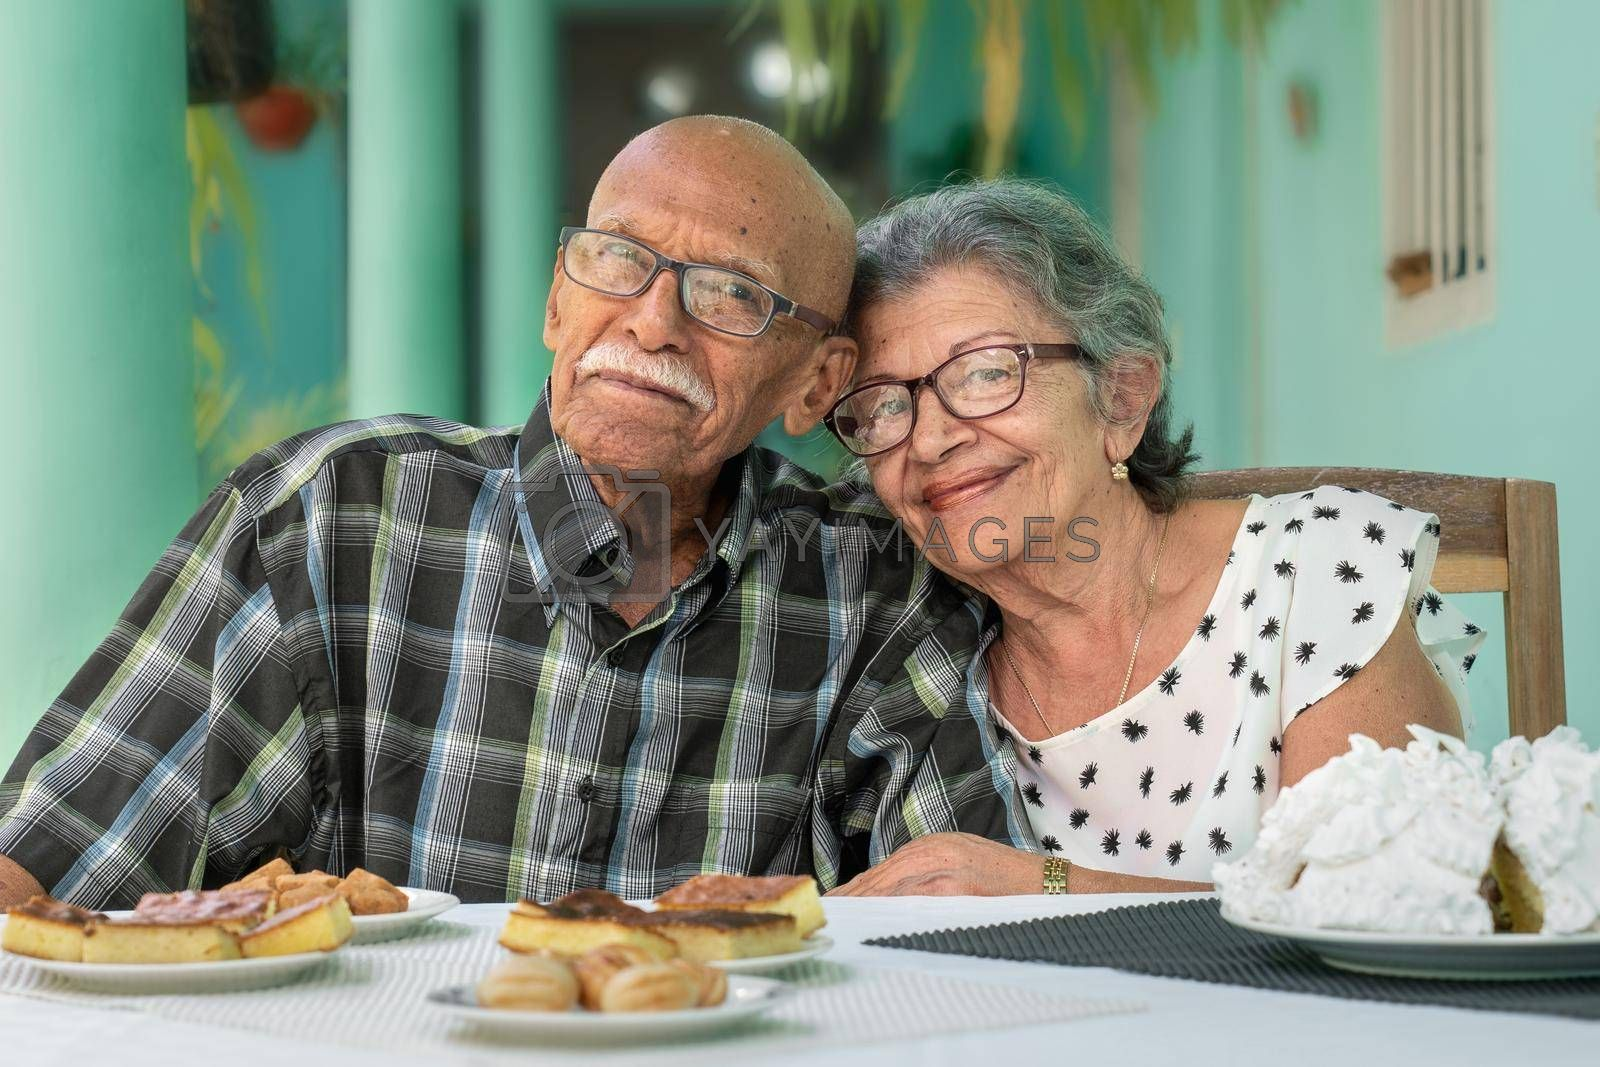 Royalty free image of Elderly couple by jrivalta